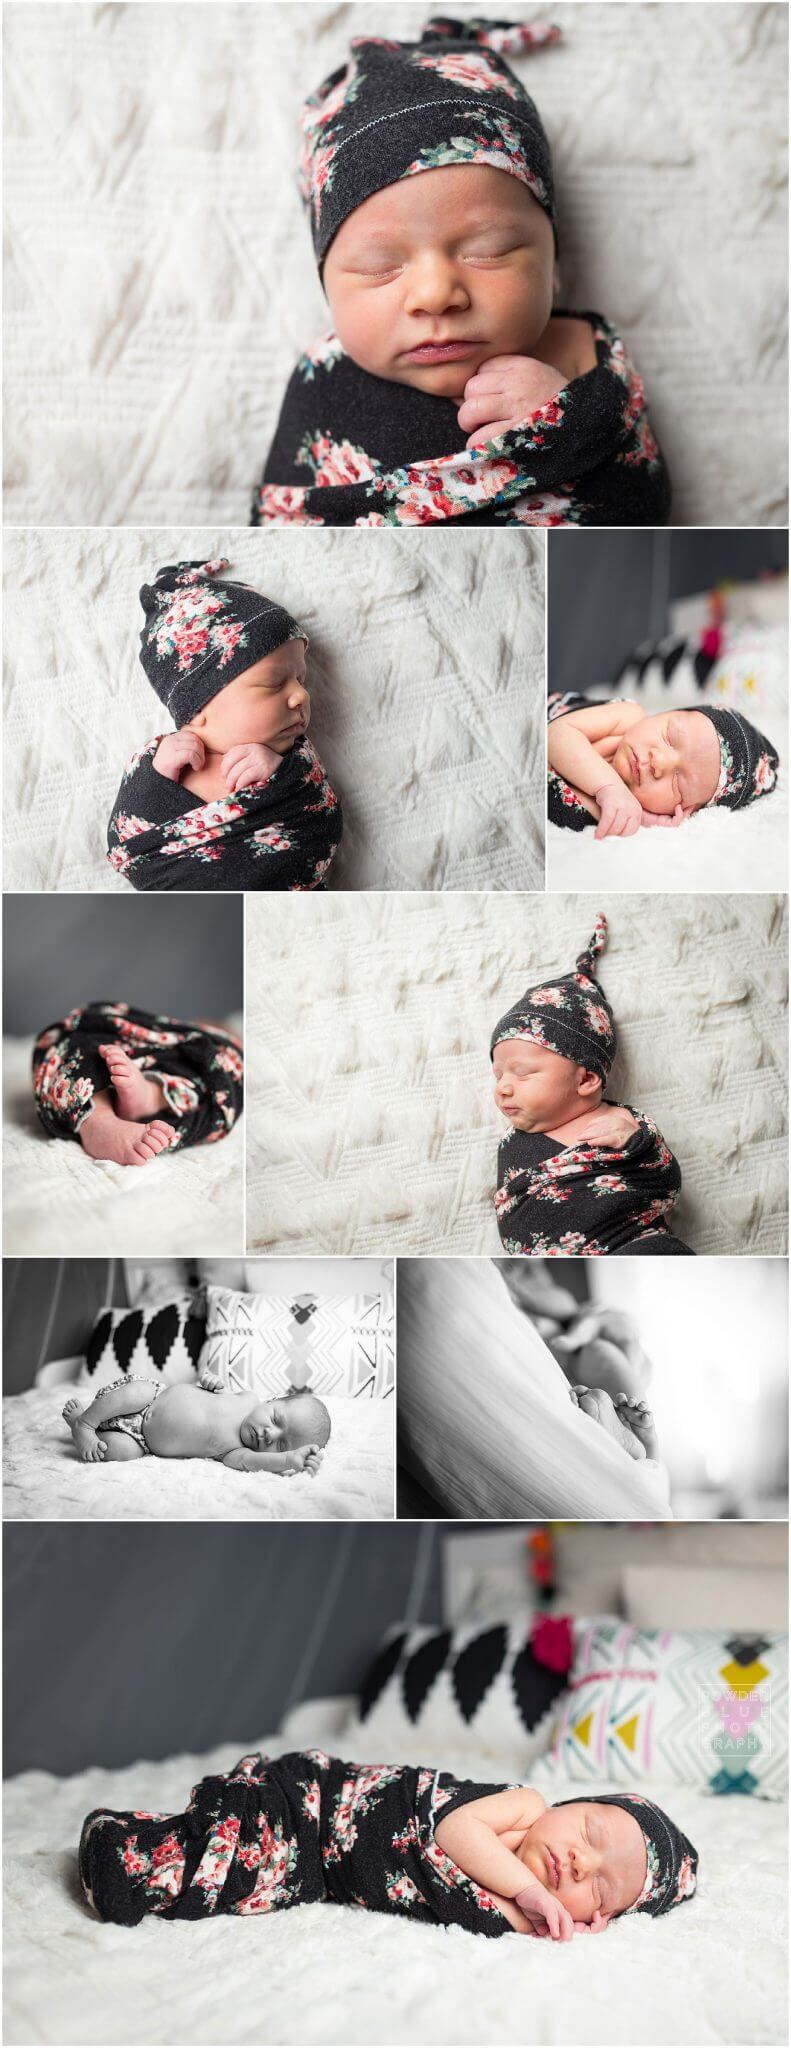 pittsburgh newborn photographer family session in home. baby girl in black wrap with floral print. Canon 600 ex-rt.